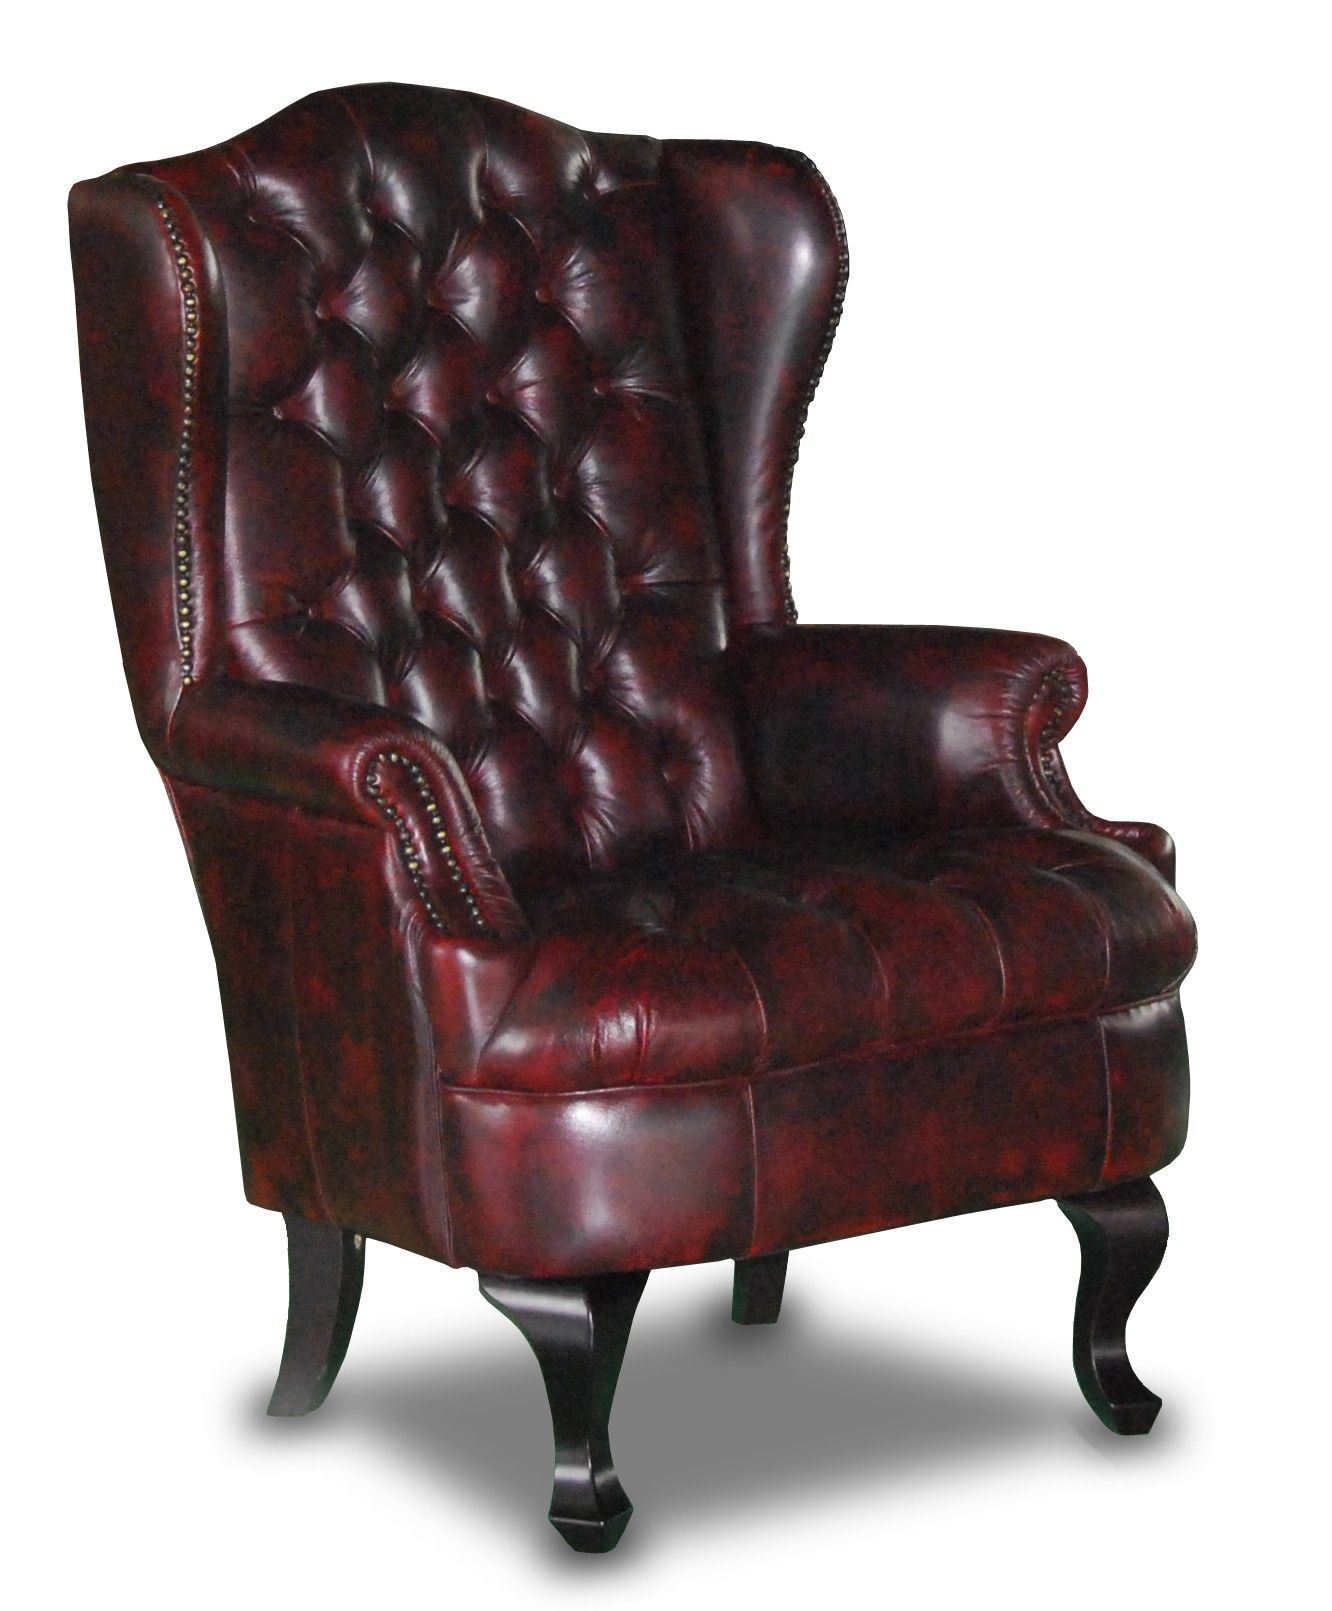 Seater queen anne high back wing sofa uk manufactured antique green - Nadia Leather Chesterfield Wing Chair